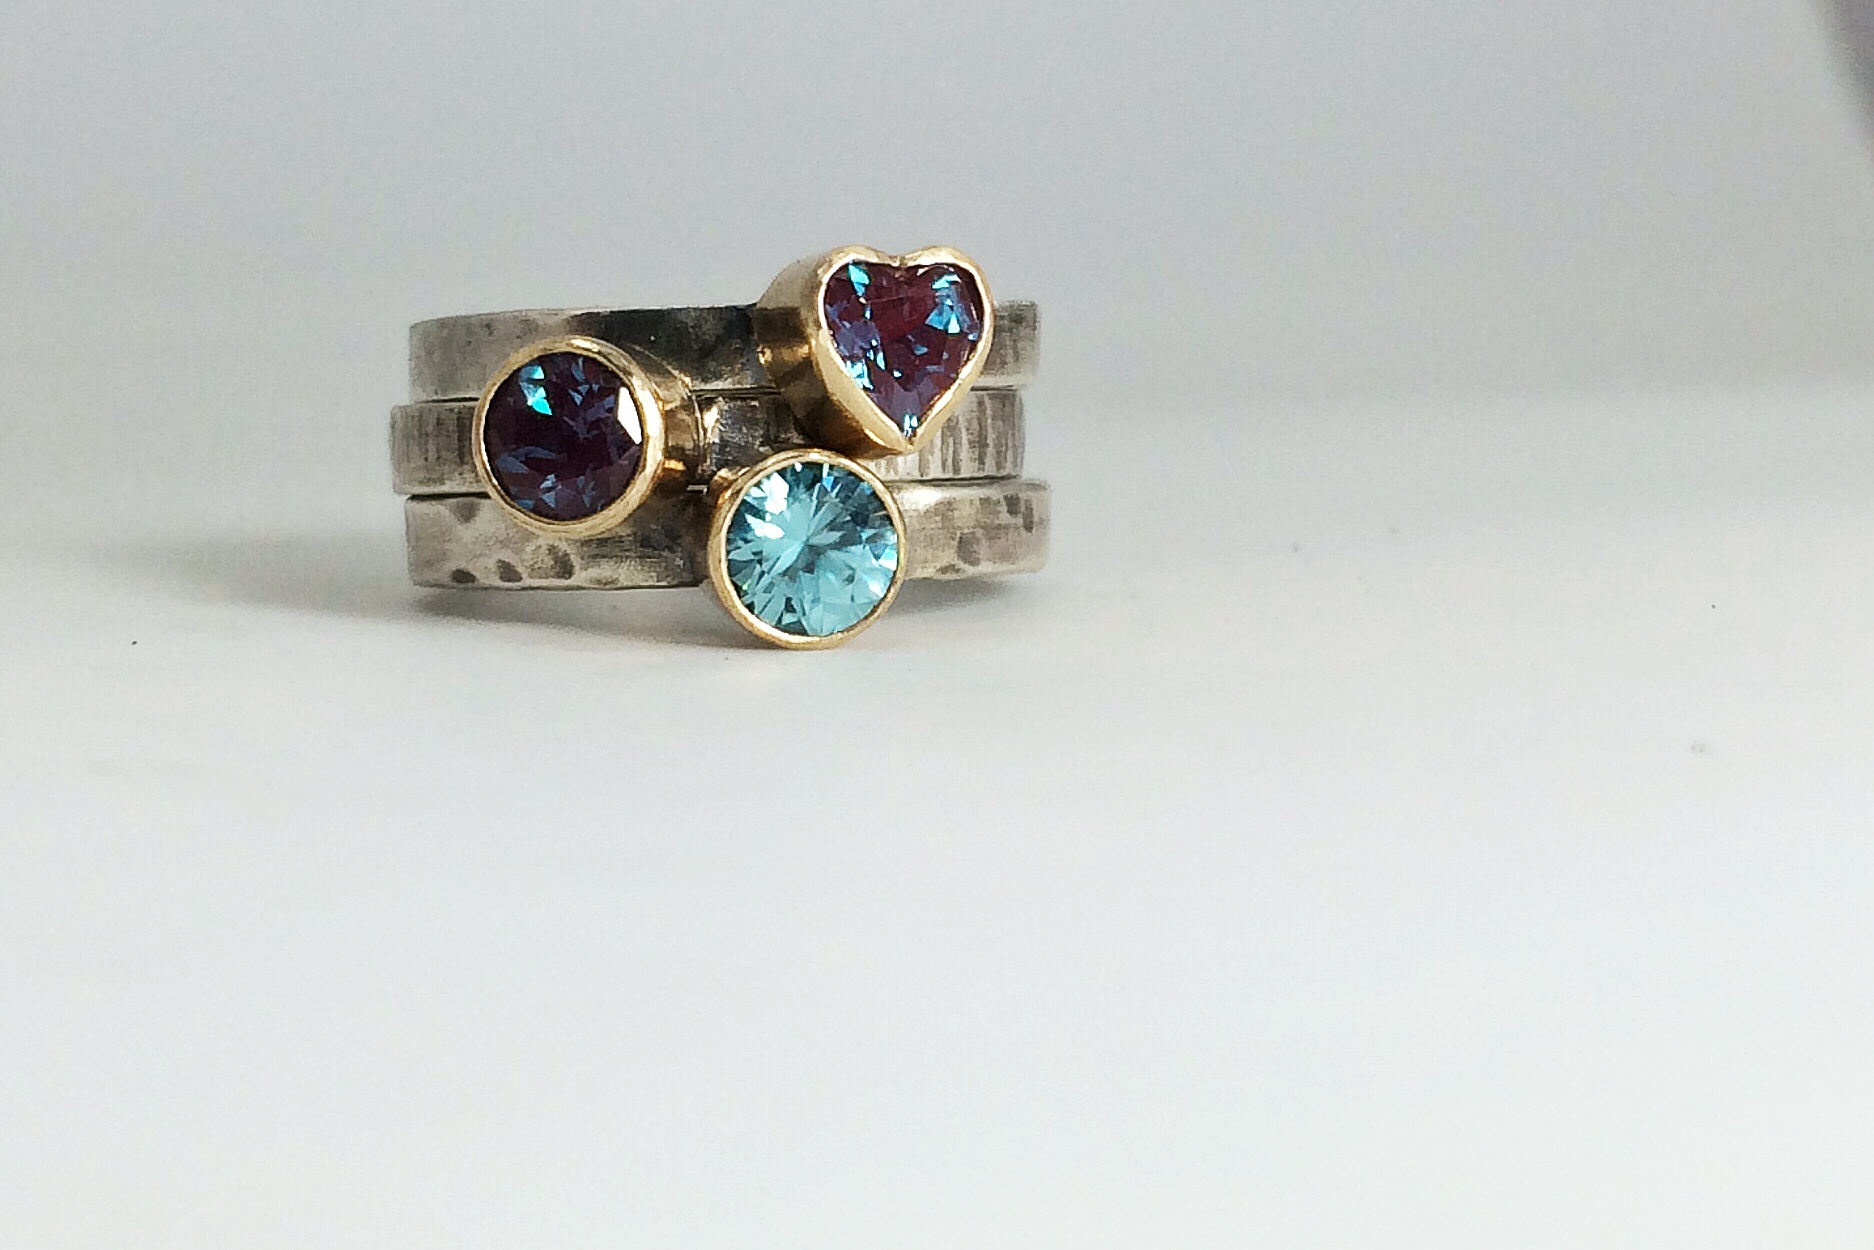 Stacking set of mother's rings - forged sterling shanks with patina, 14k bezels, alexandrite (June) and blue zircon (December)